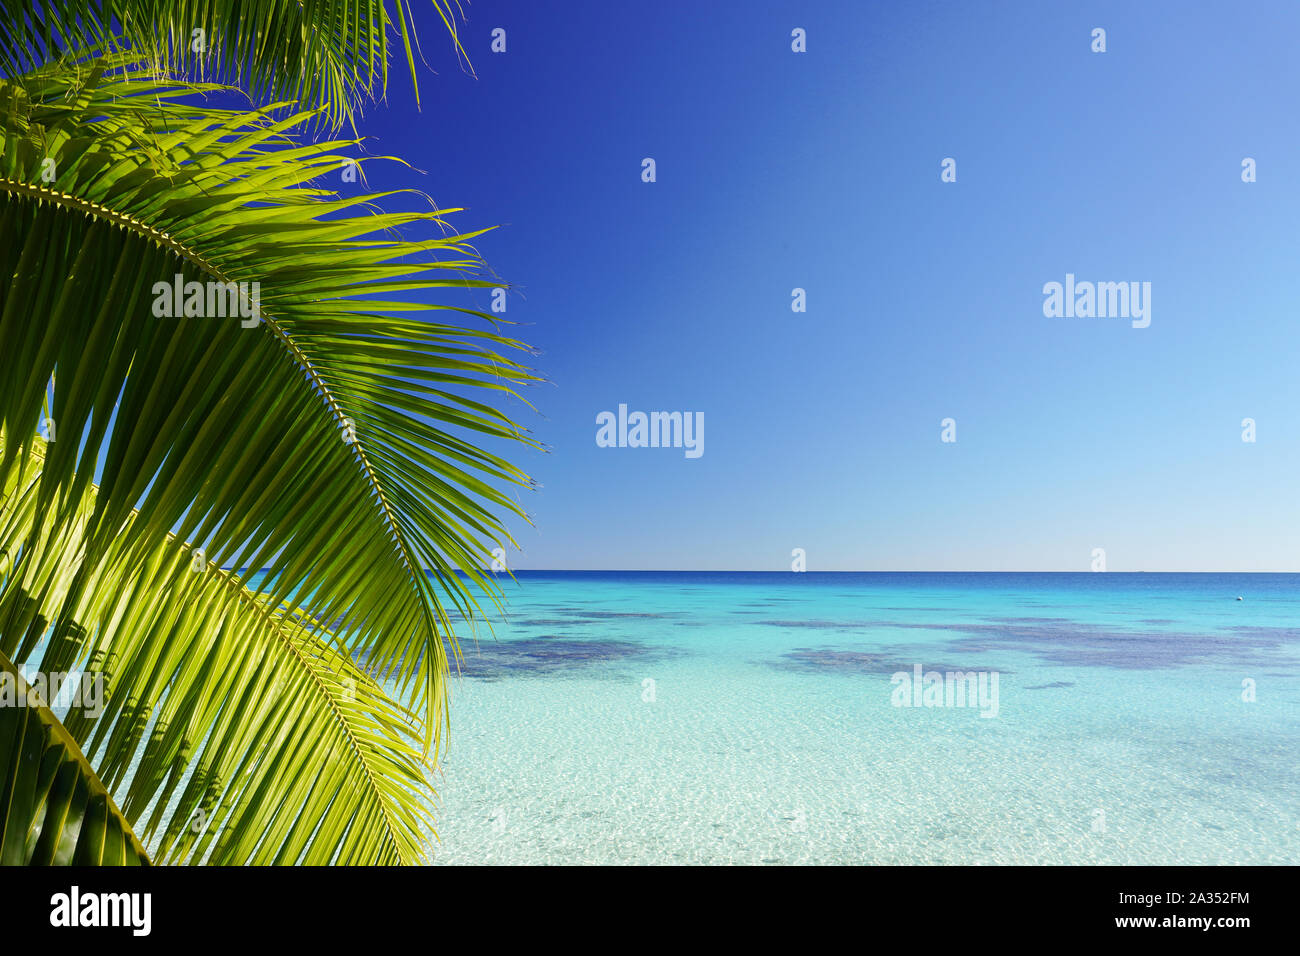 The leaves of a palm tree frame a turquoise lagoon surrounded by a bright clear blue sky with copy space Stock Photo